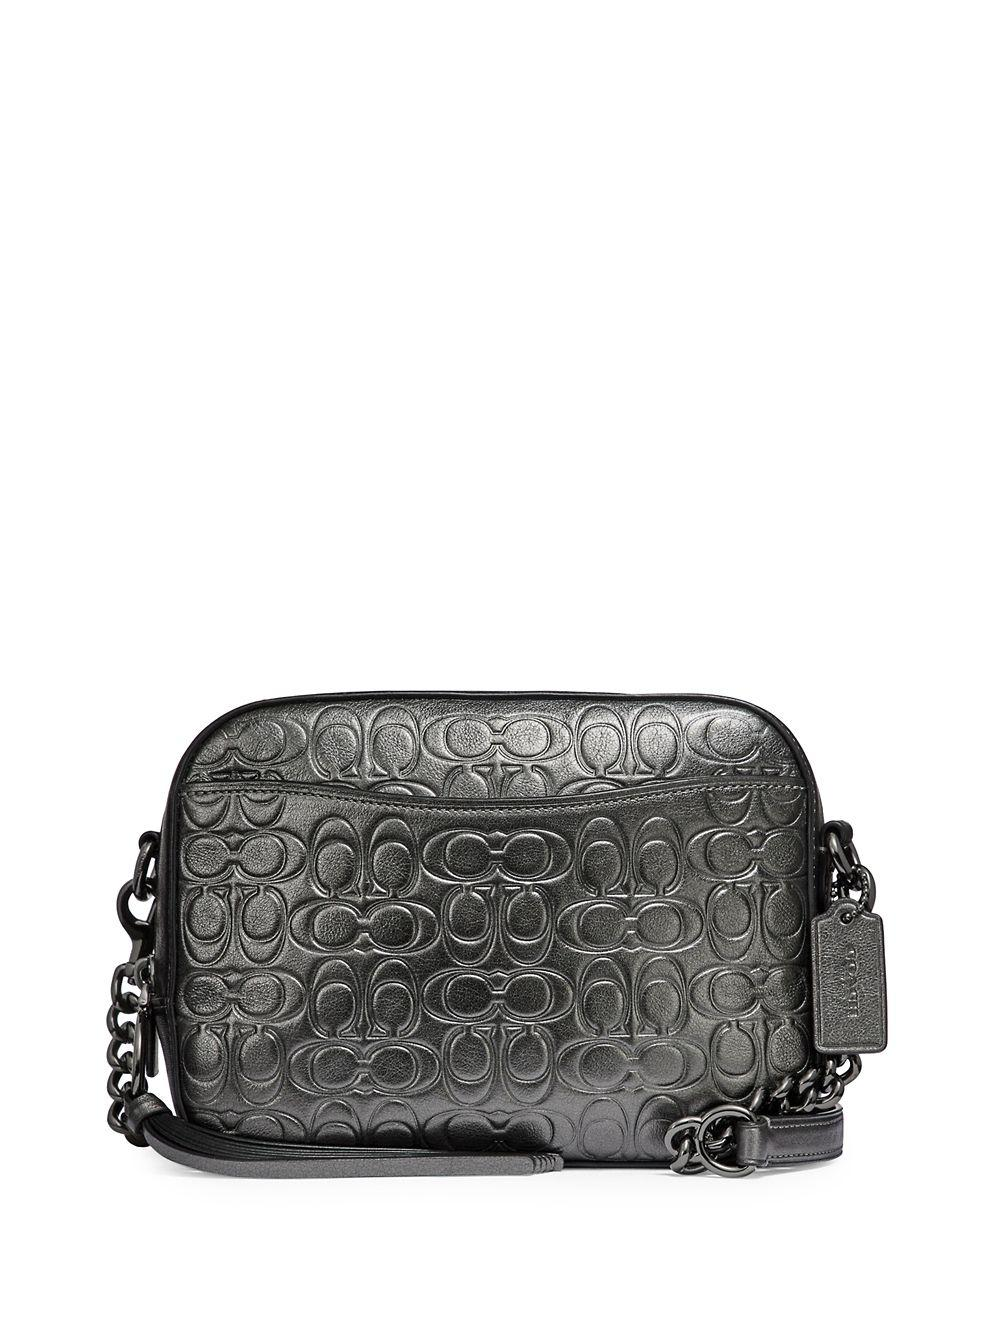 Lyst - Coach Signature Metallic Leather Camera Bag in Gray dfa7d99c3ded3